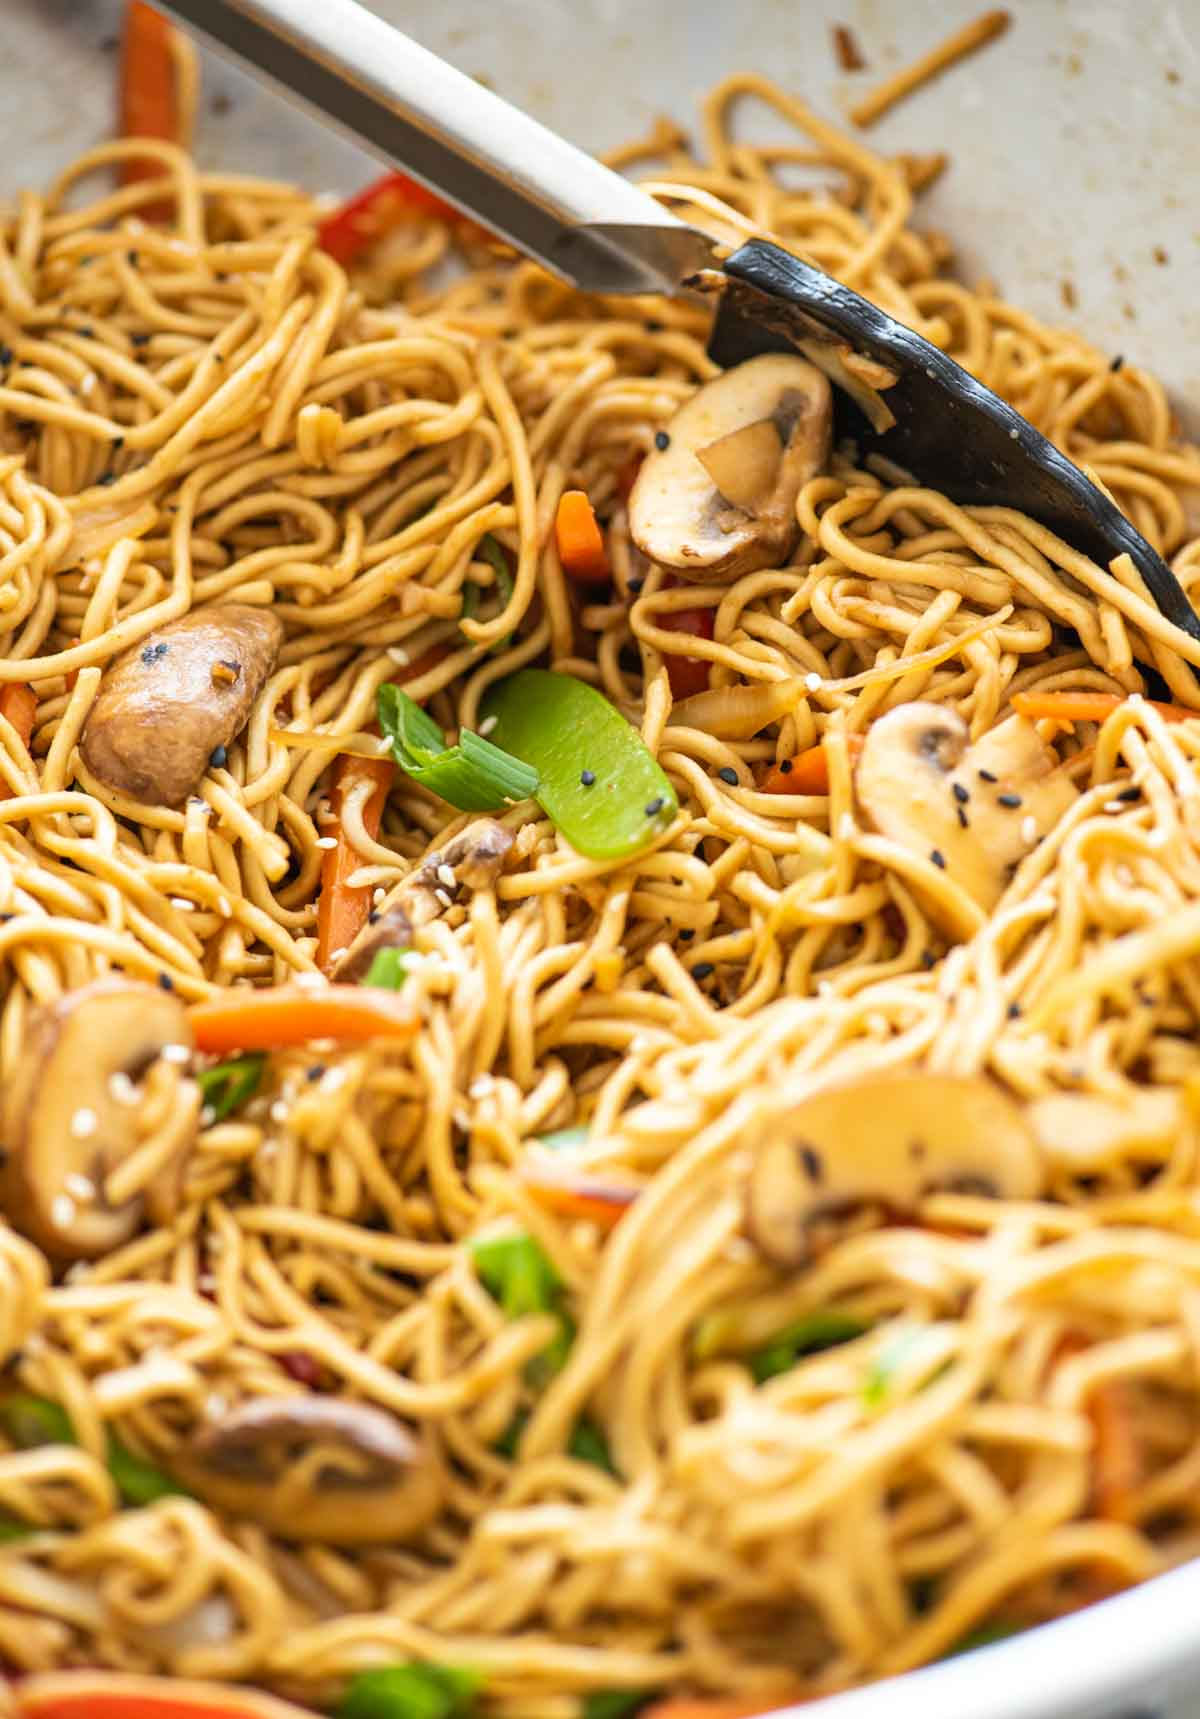 Vegetable chow mein in a wok, mixed with tongs